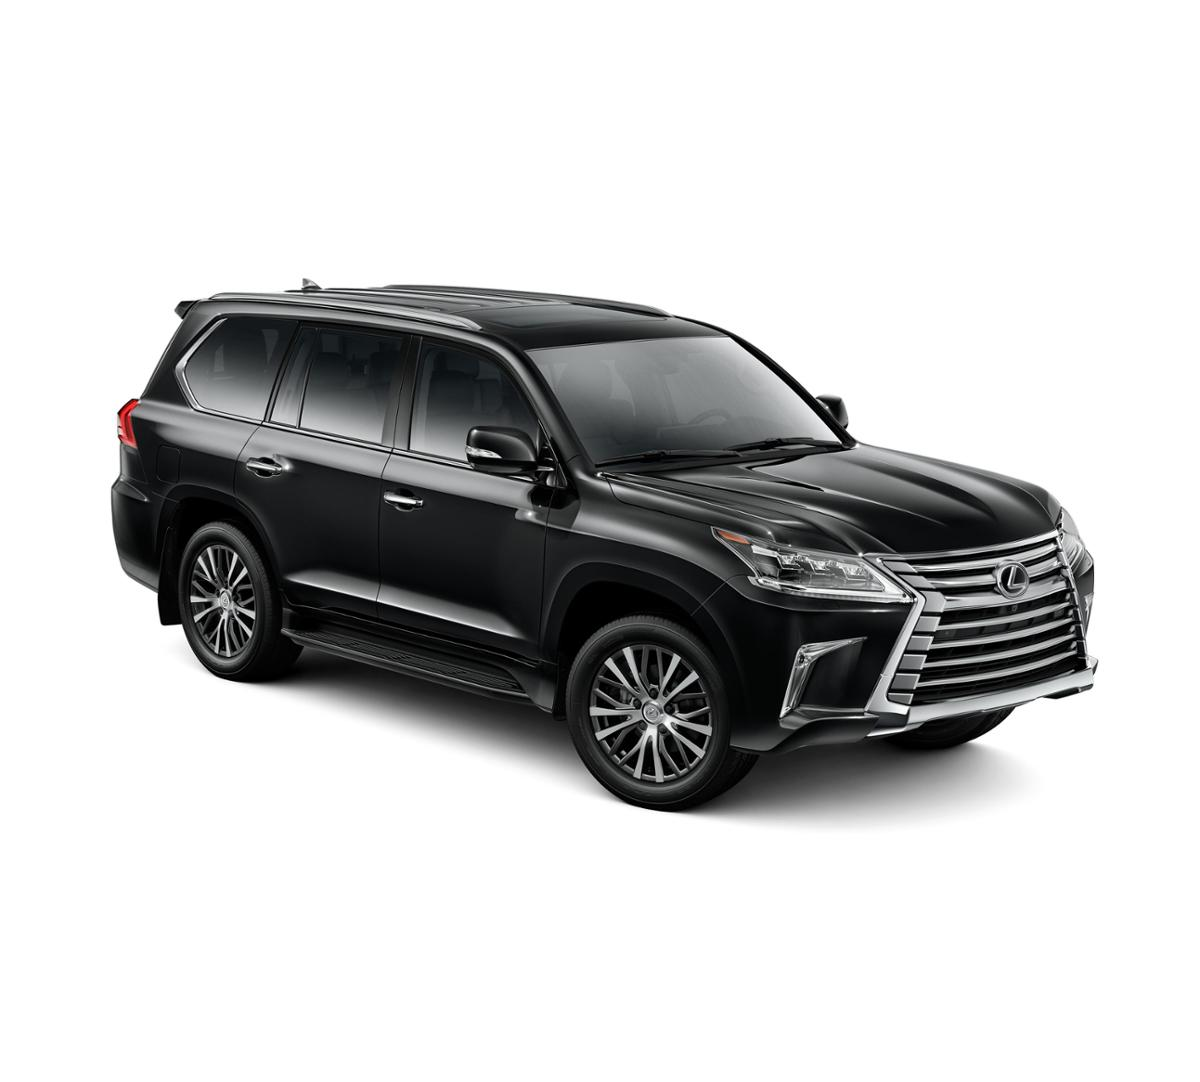 2017 Lexus LX 570 Vehicle Photo in Mission Viejo, CA 92692